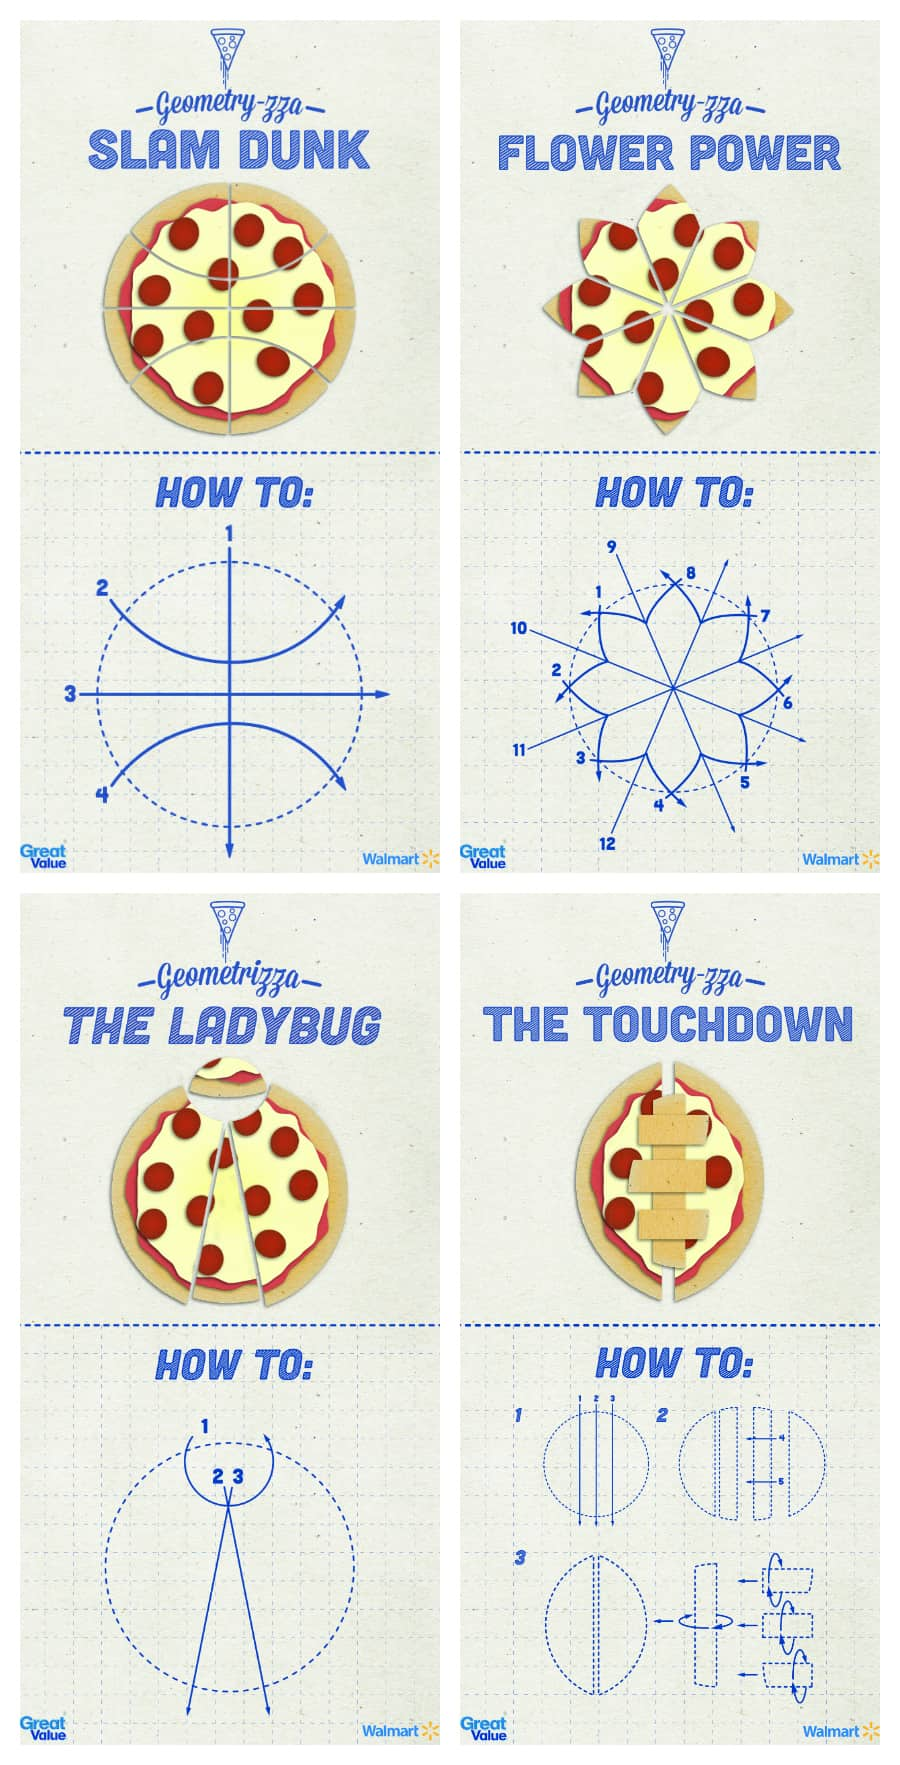 Pizza Geometry-zza for Kids to try at home. Fun ways to create and cut your pizza